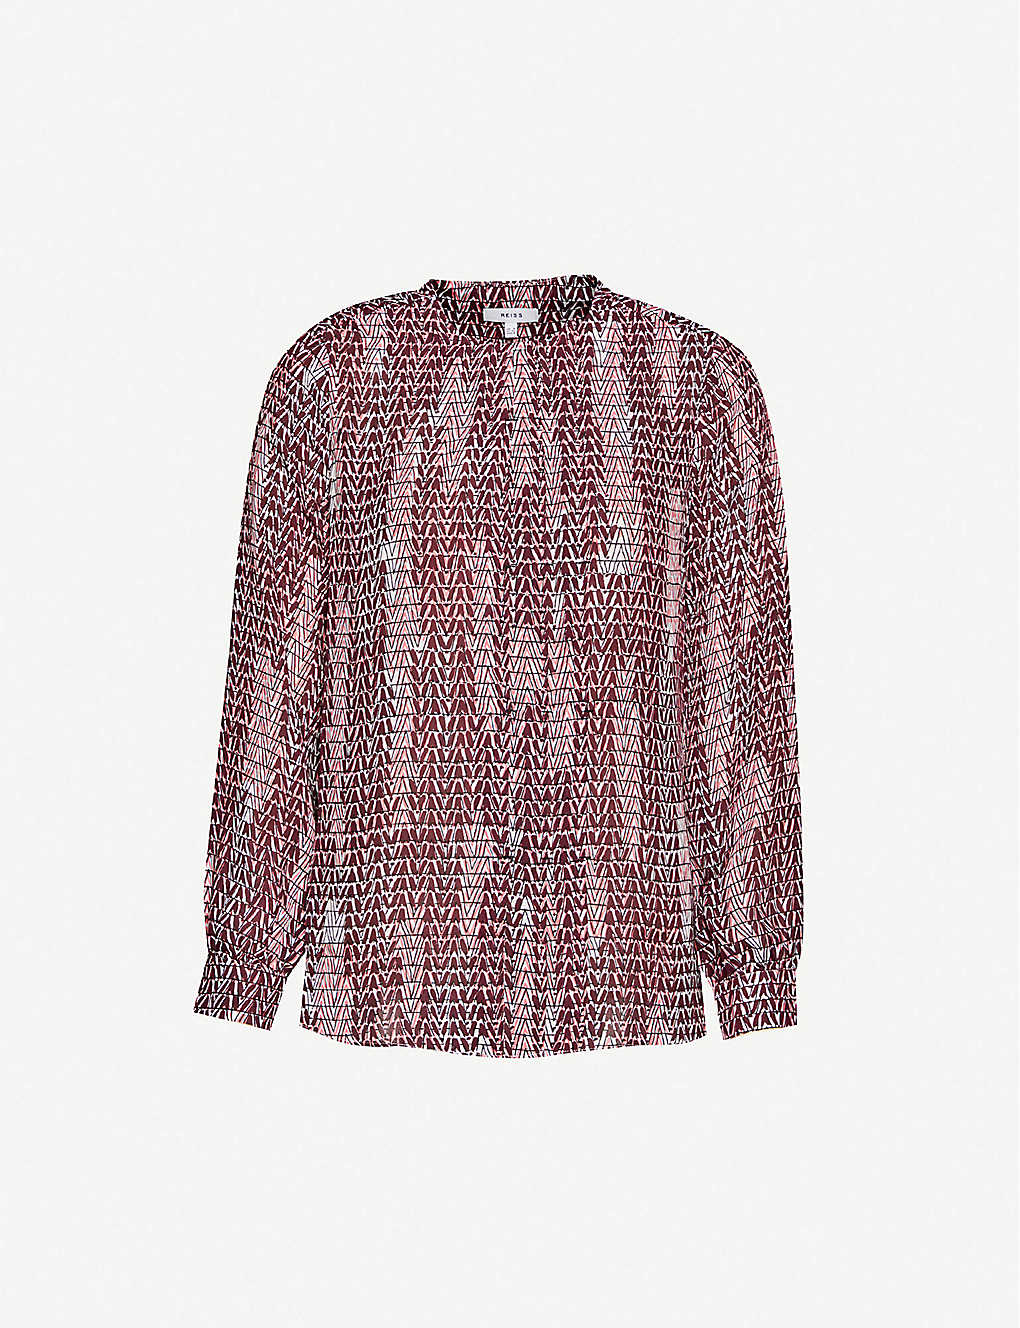 REISS: Peyton woven puff sleeves shirt